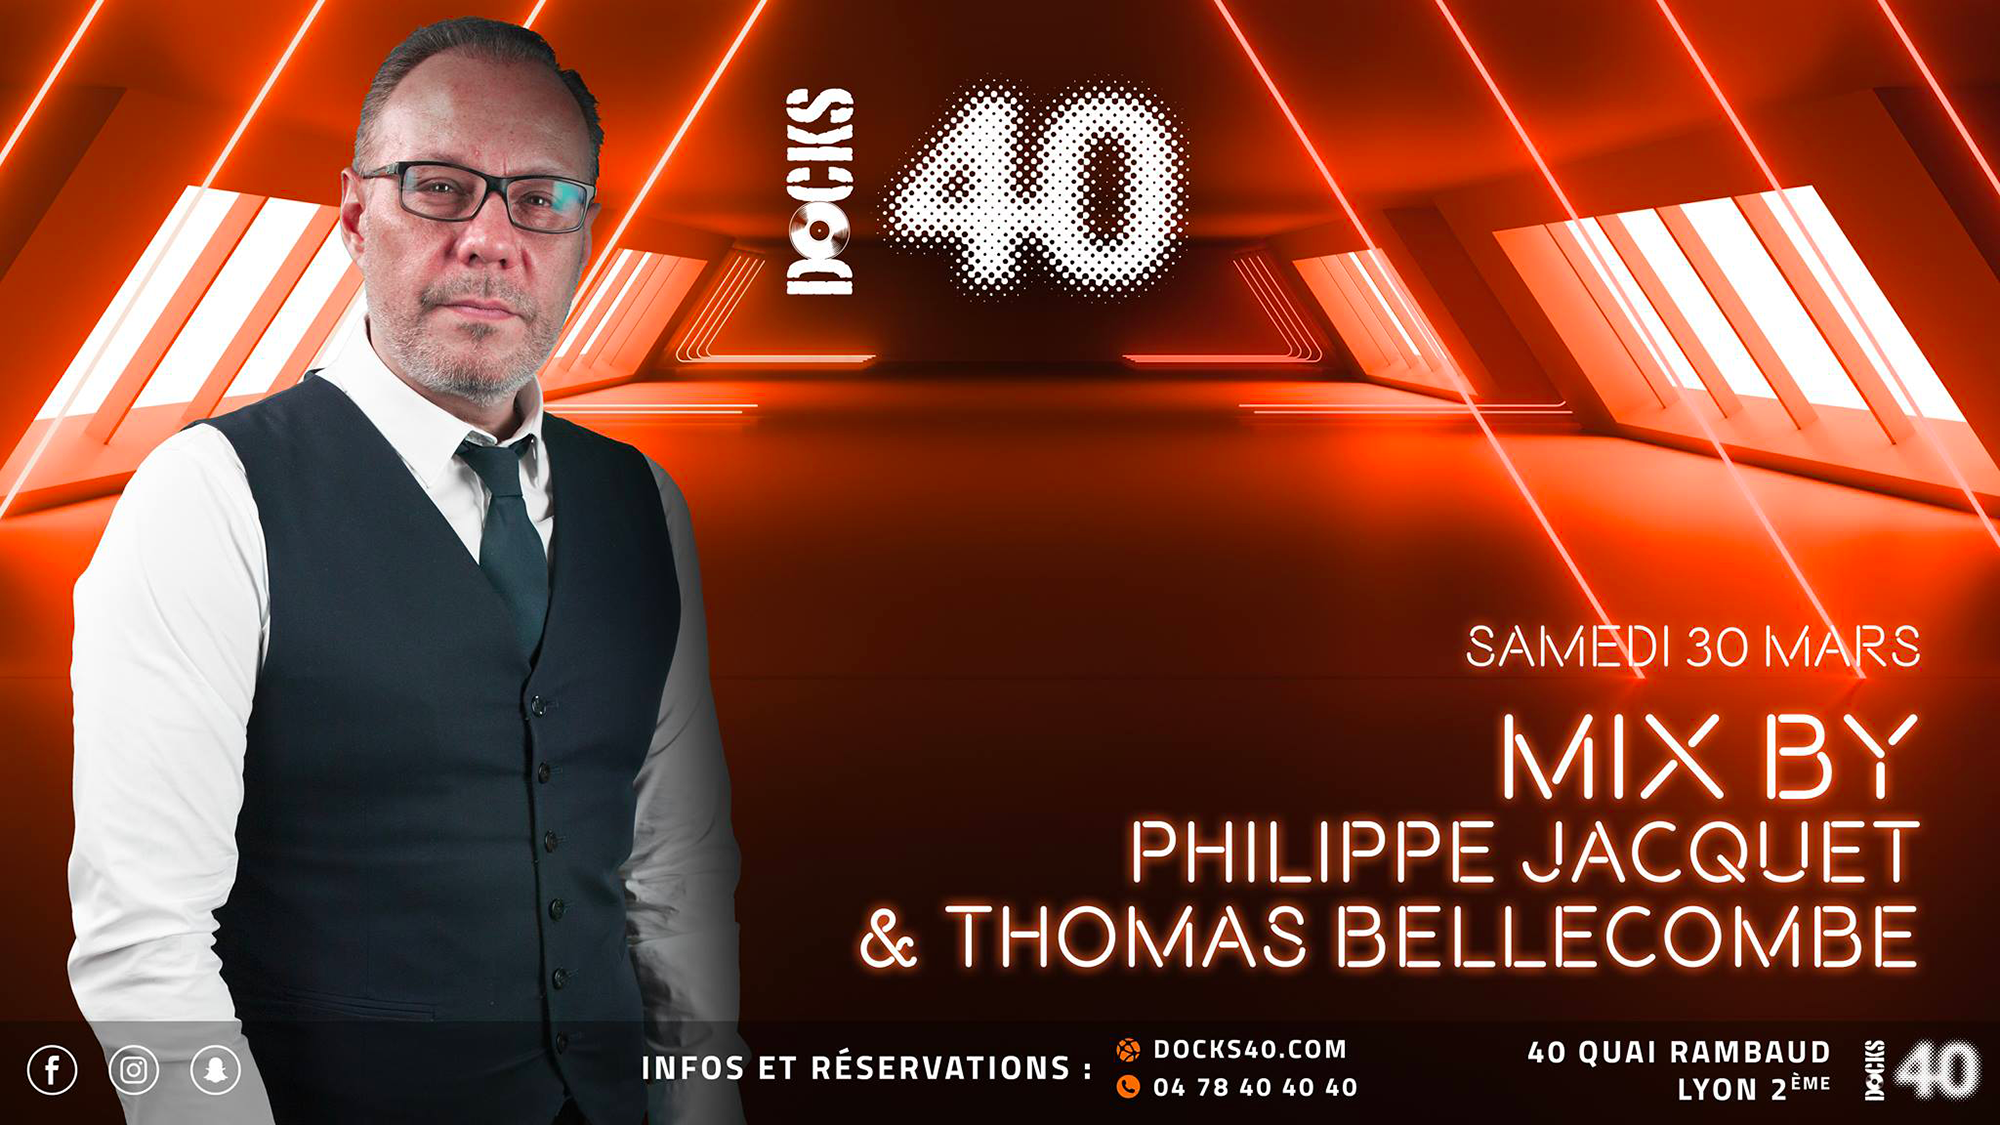 Philippe Jacquet et Thomas Bellecombe - Docks Club